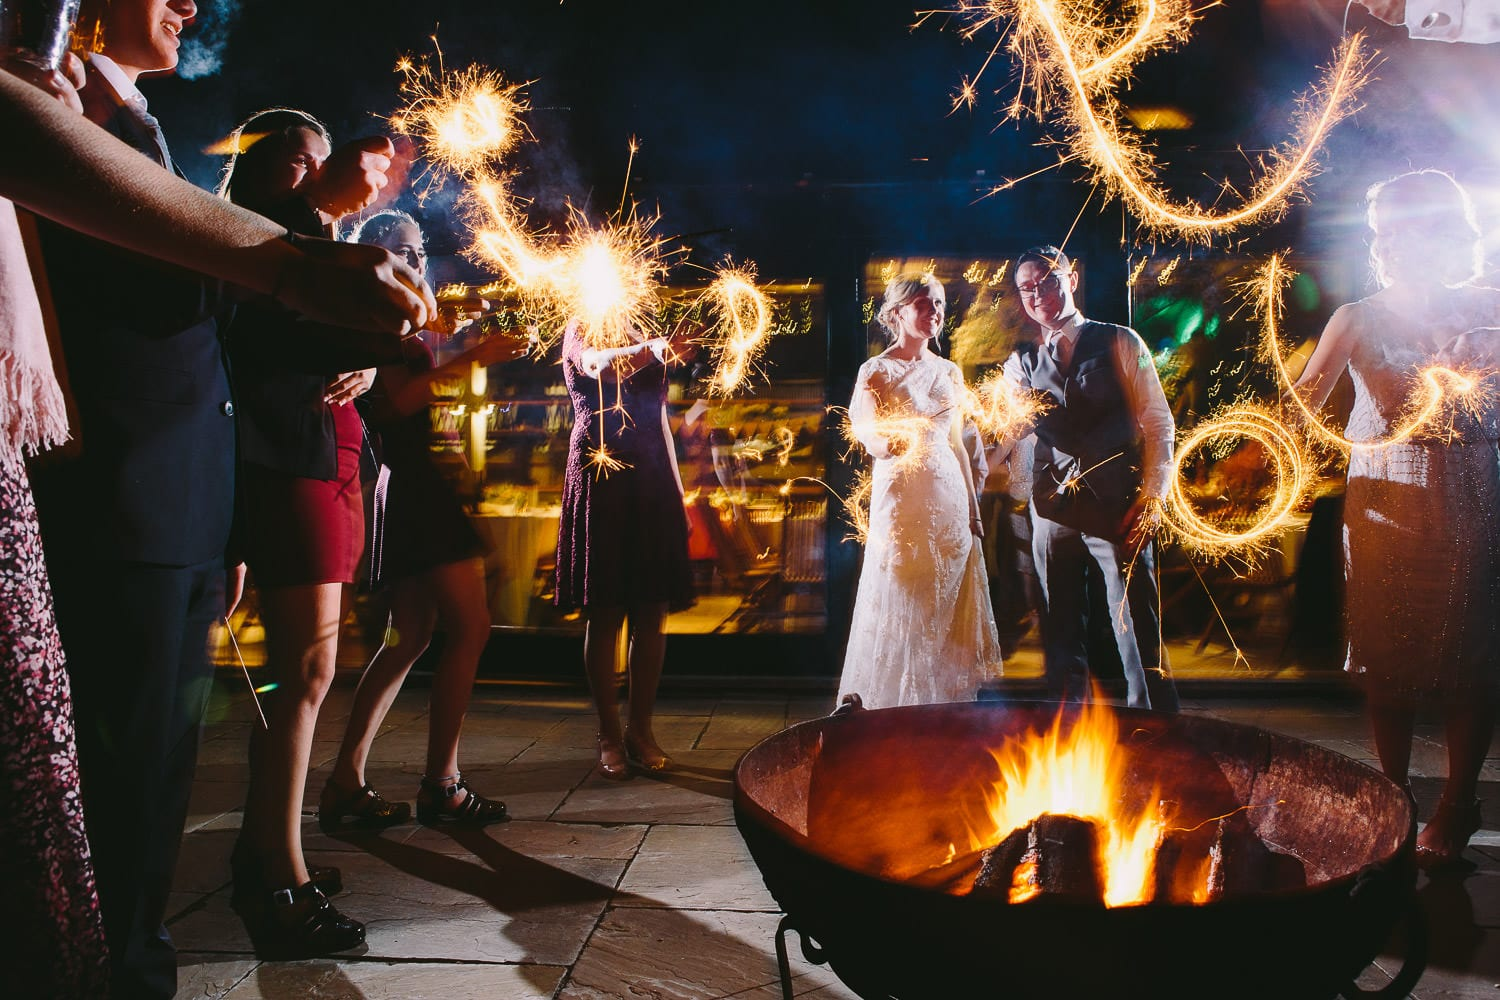 Bride and groom wave sparklers in the evening